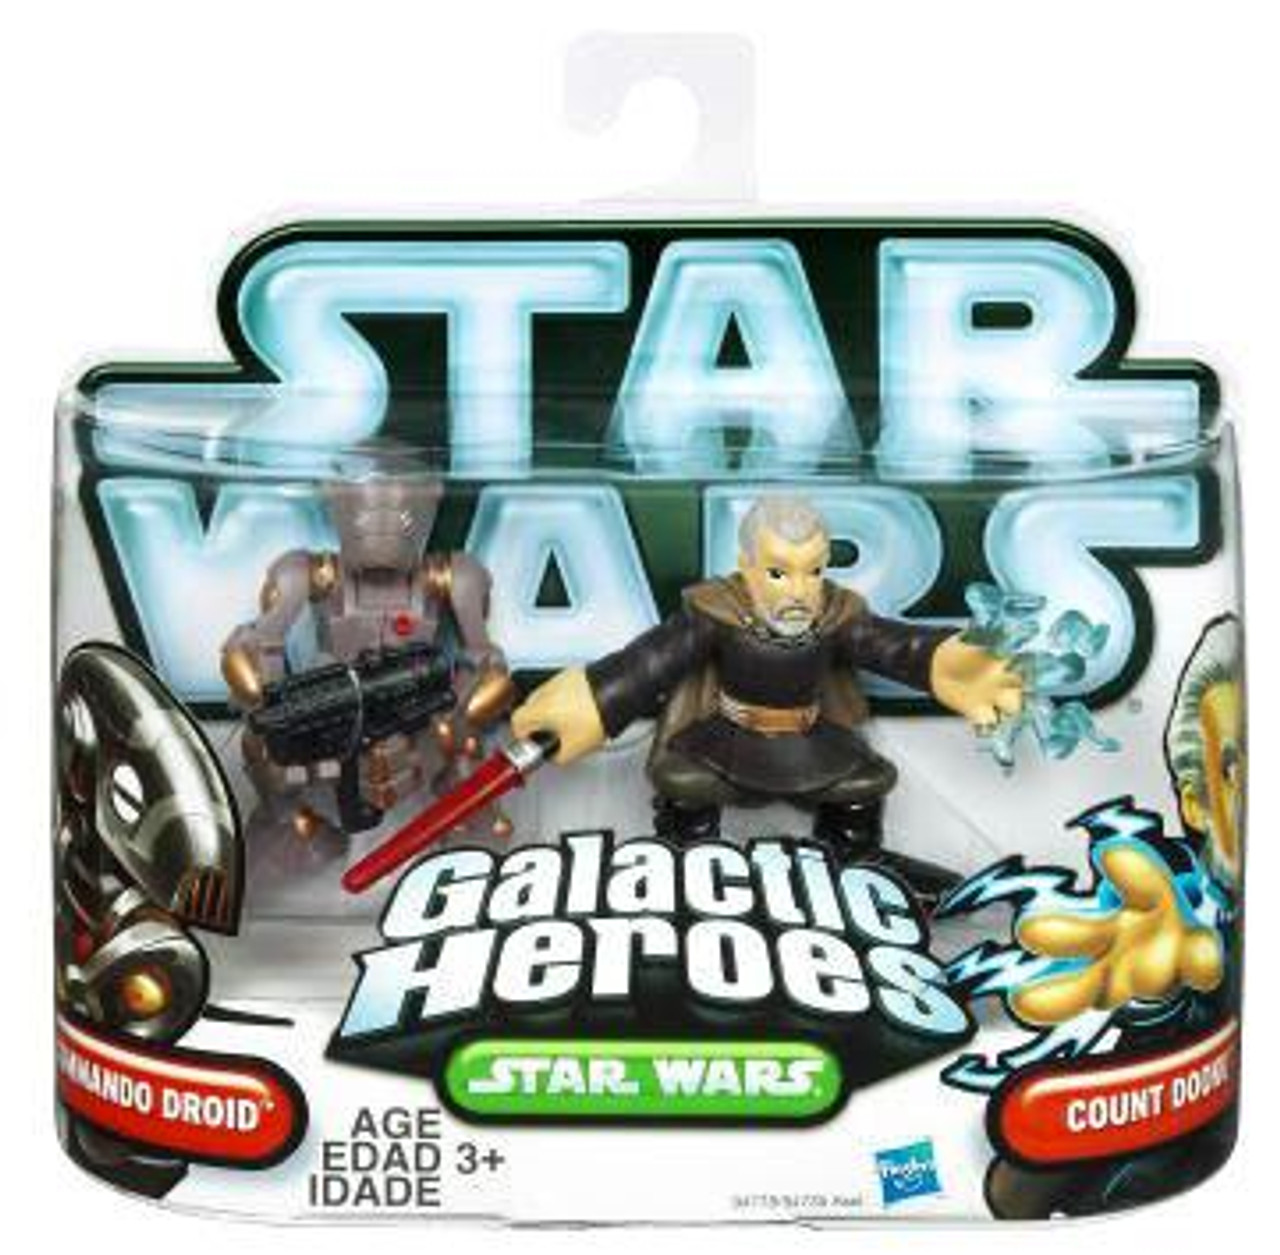 Star Wars The Clone Wars Galactic Heroes 2010 Count Dooku & Commando Droid Mini Figure 2-Pack